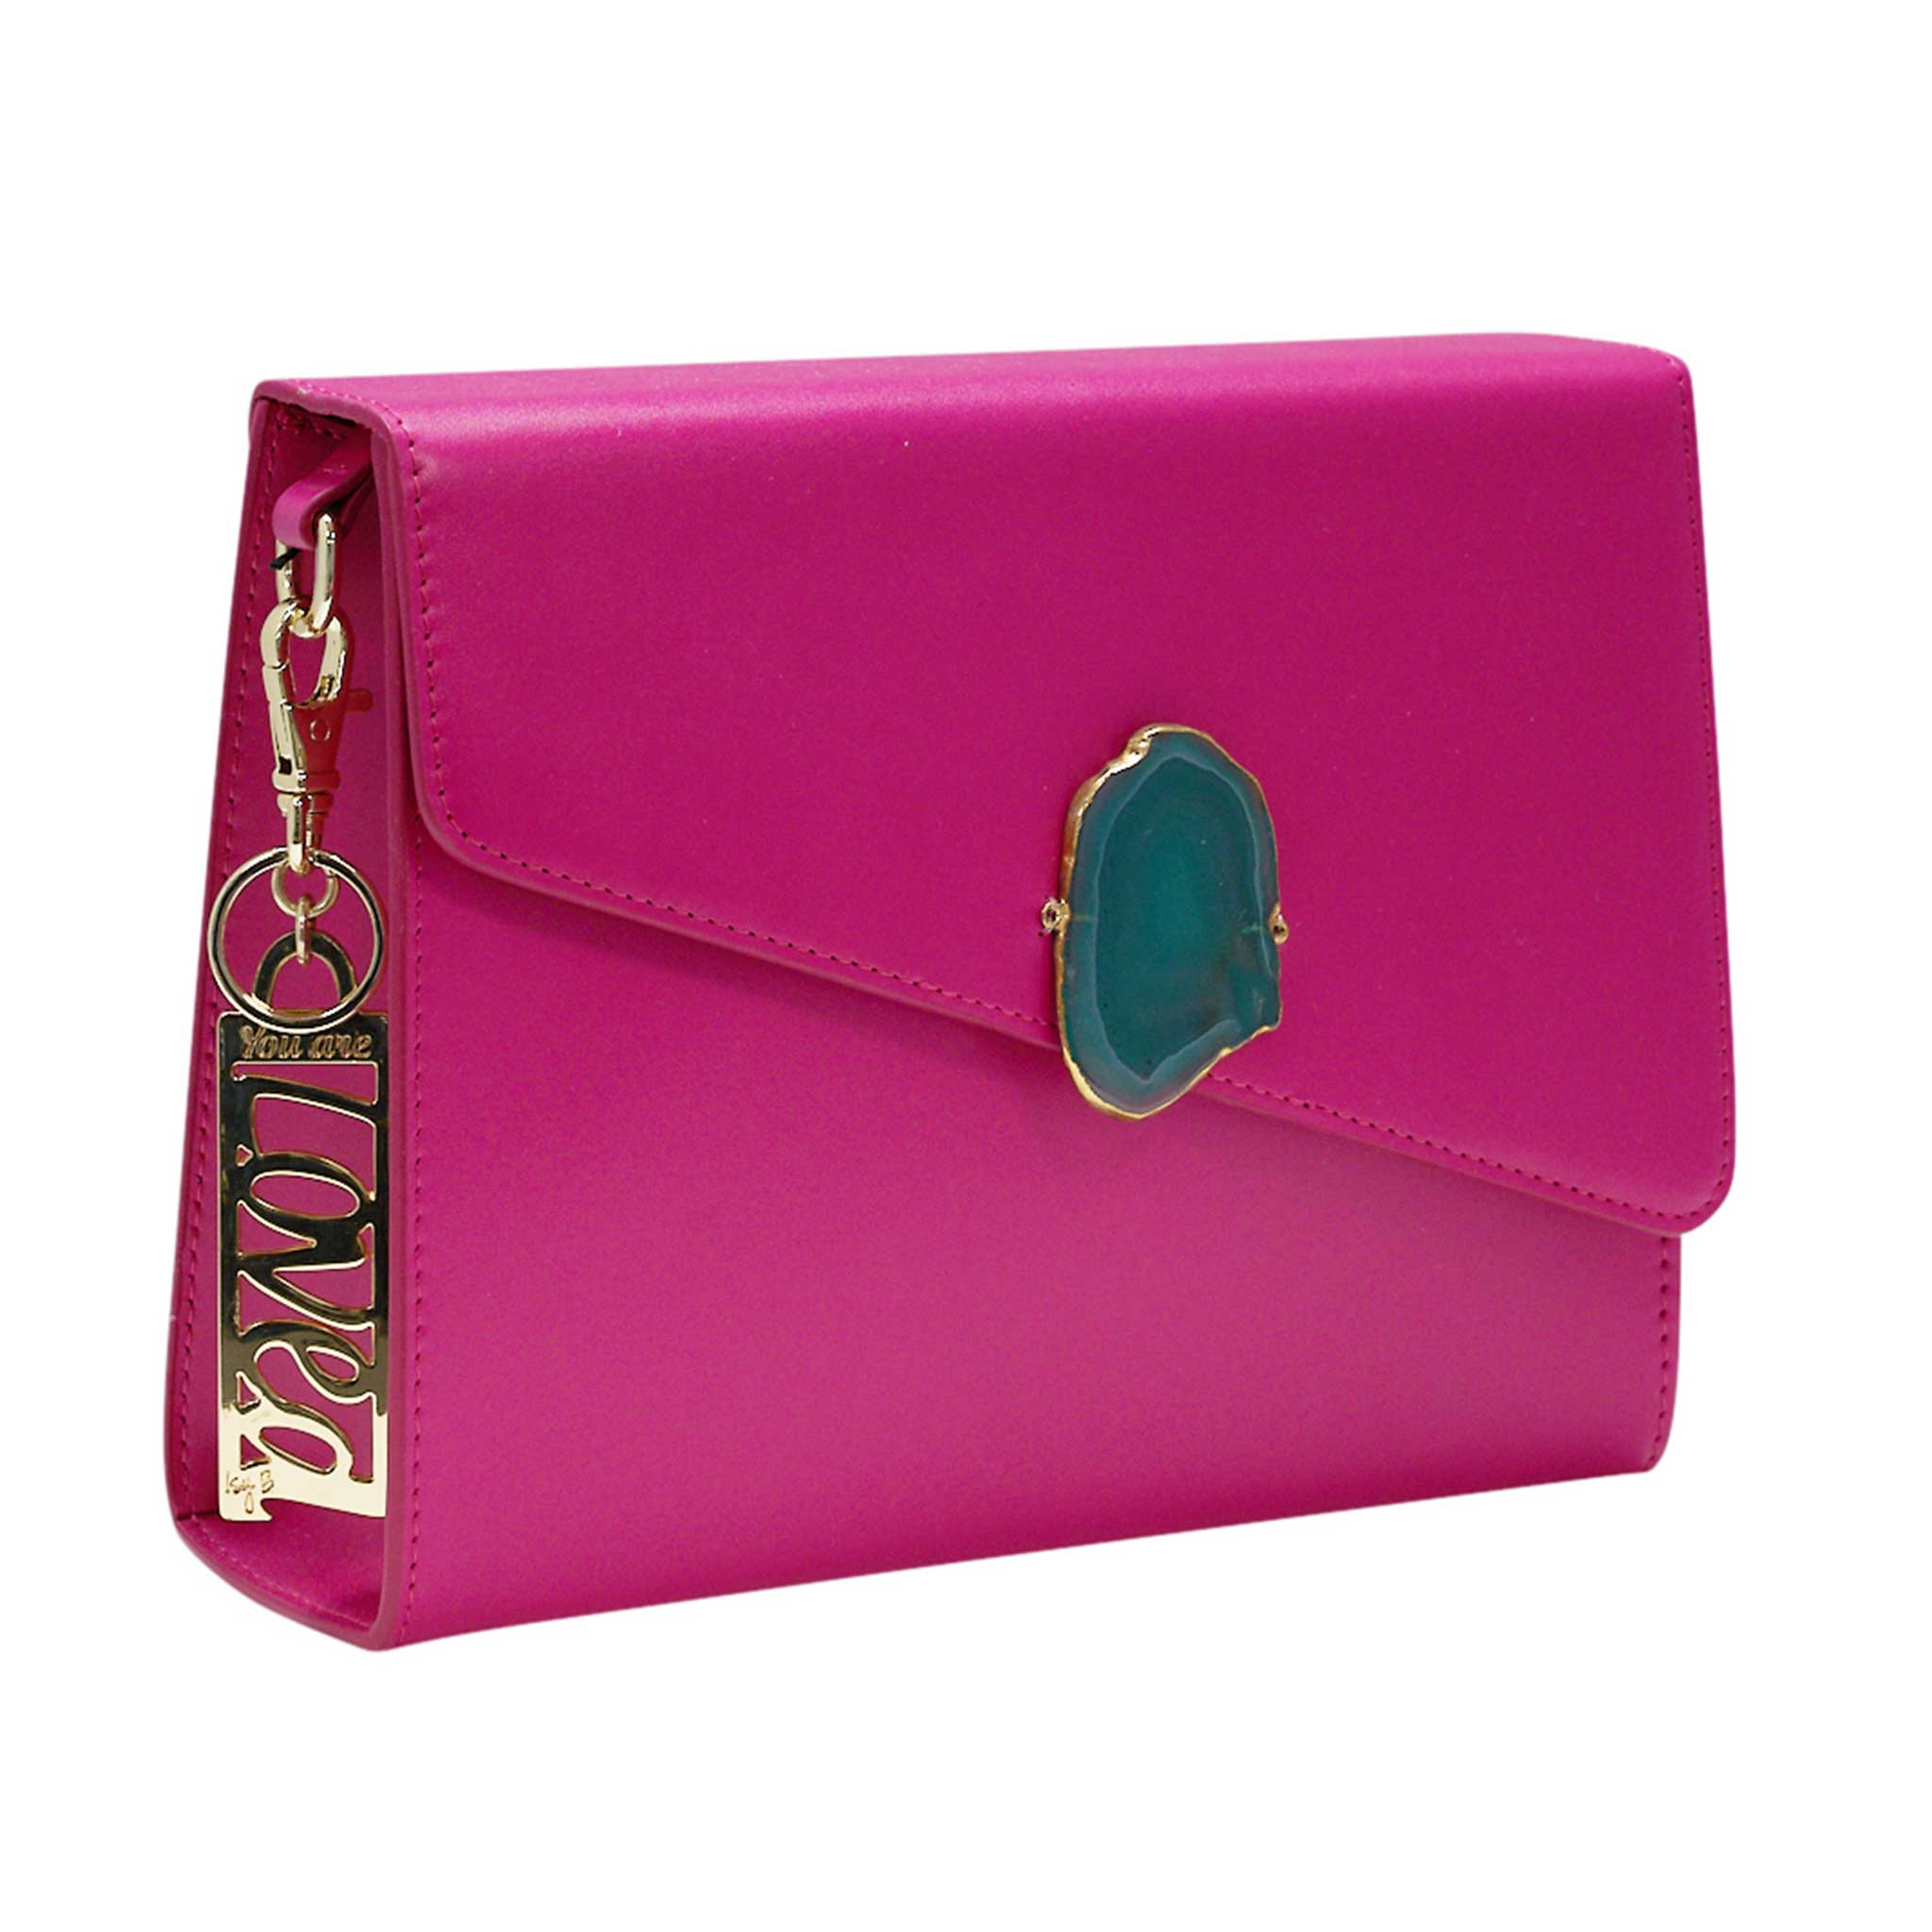 LOVED BAG - PINK RUBY LEATHER WITH PURPLE AGATE - 1.01.006.009